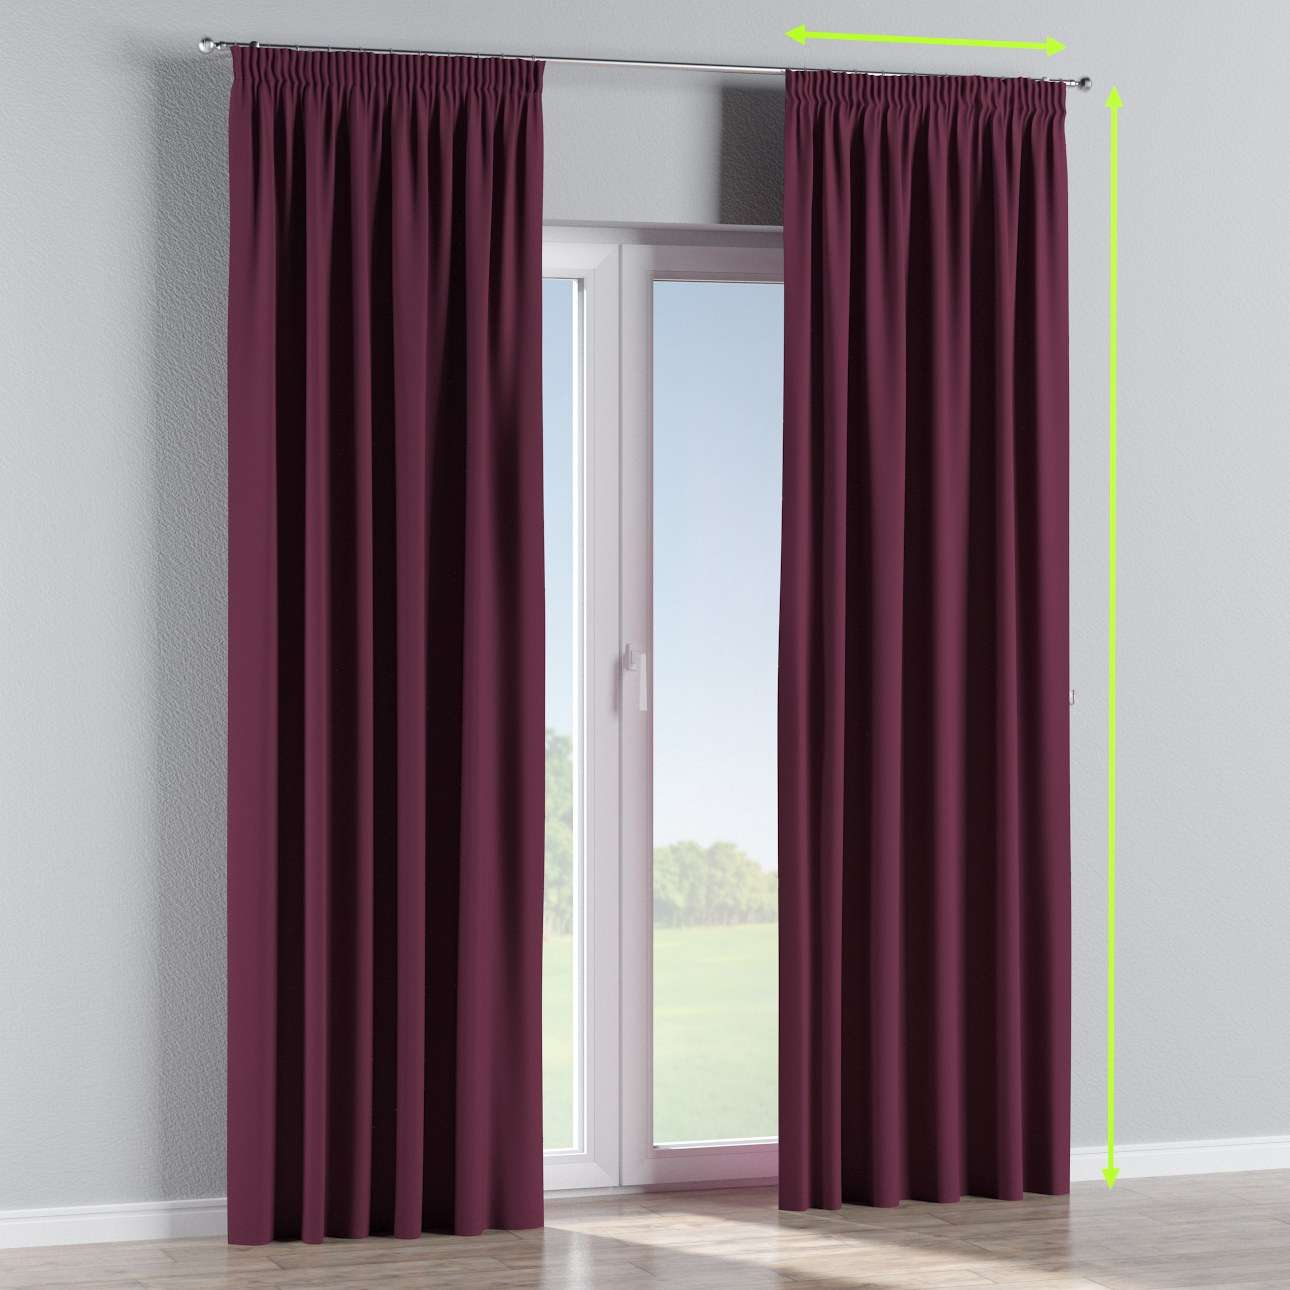 Pencil pleat curtains in collection Blackout, fabric: 269-53